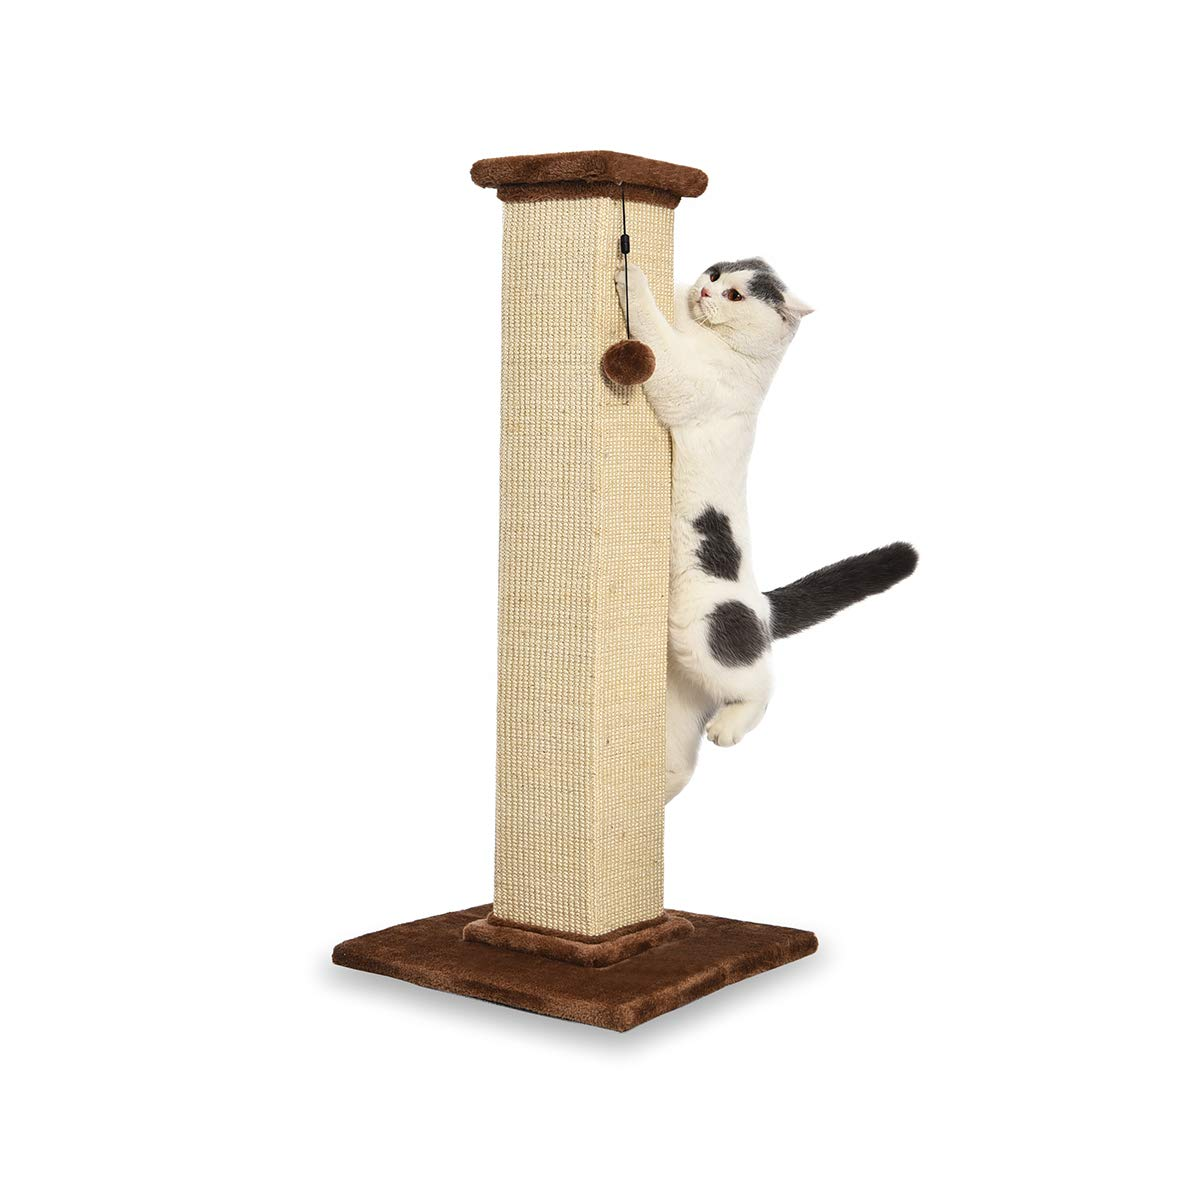 AmazonBasics Large Premium Tall Cat Scratching Post - 16 x 35 x 16 Inches, Brown Carpet by AmazonBasics